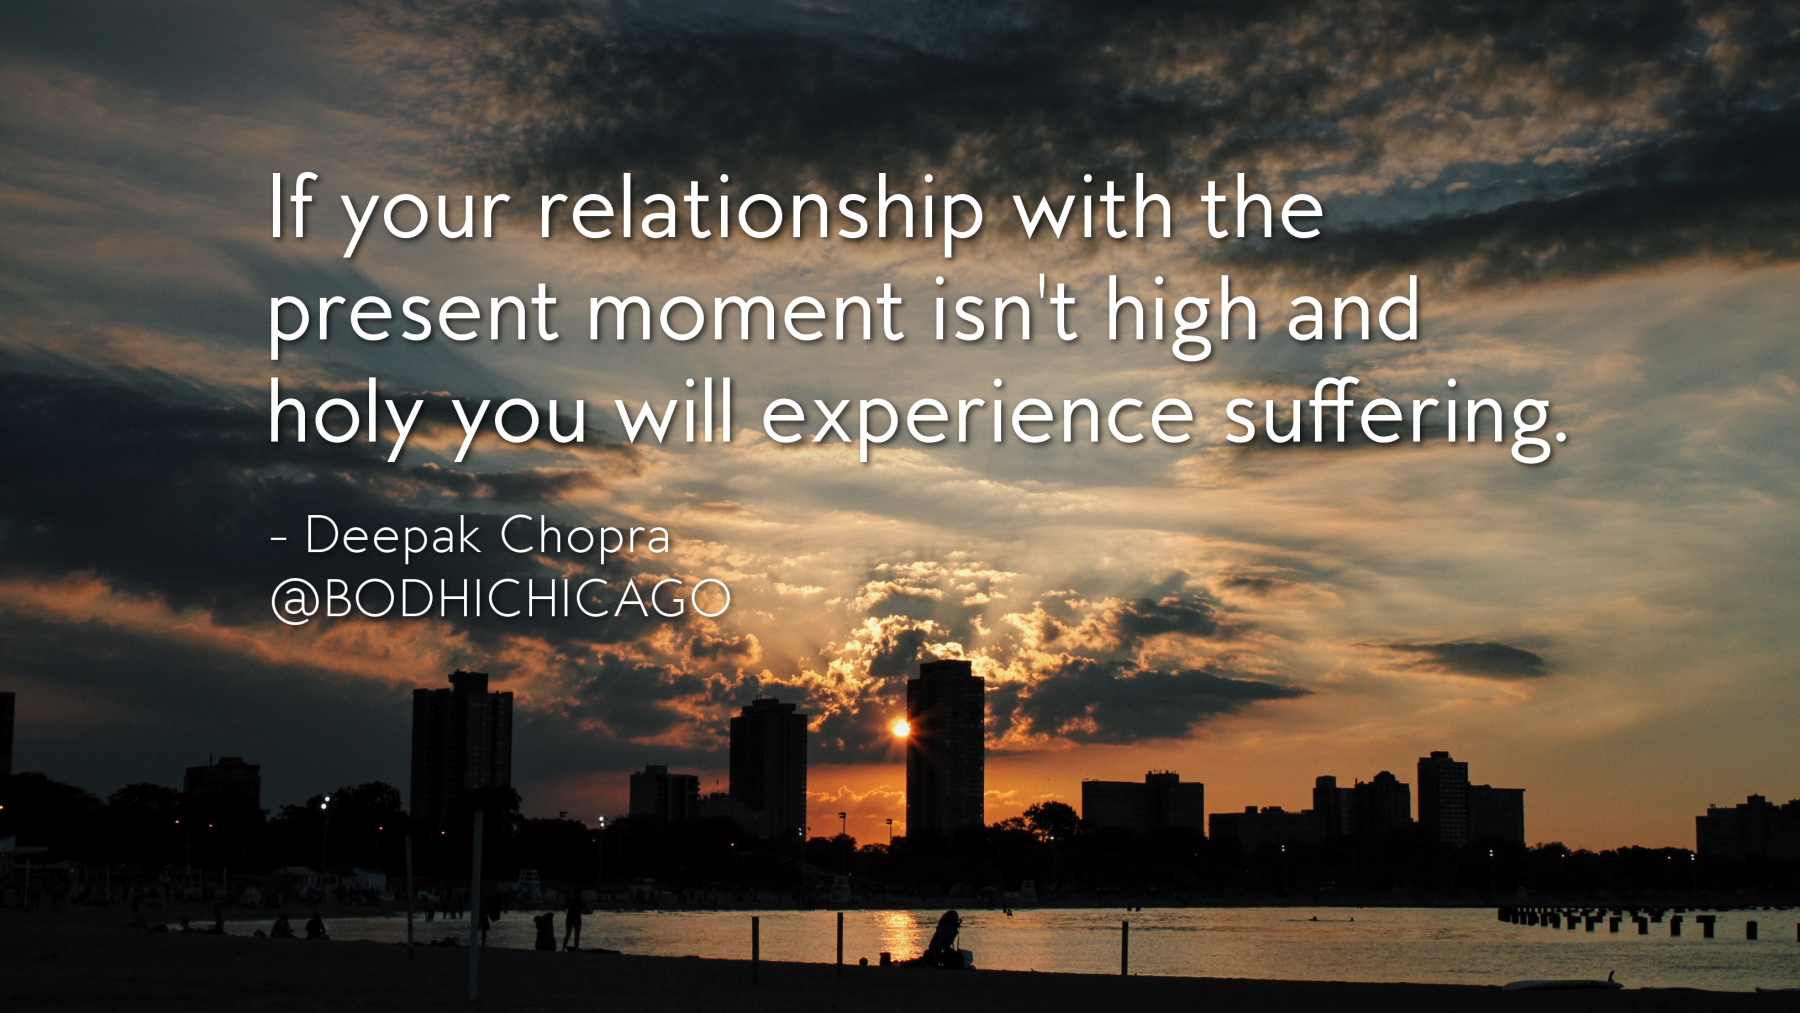 Image of: Communication Wednesday Wisdom Quote Deepak Chopra On Relationship With The Present Moment Bodhi Spiritual Center Wednesday Wisdom Quote Deepak Chopra On Relationship With The